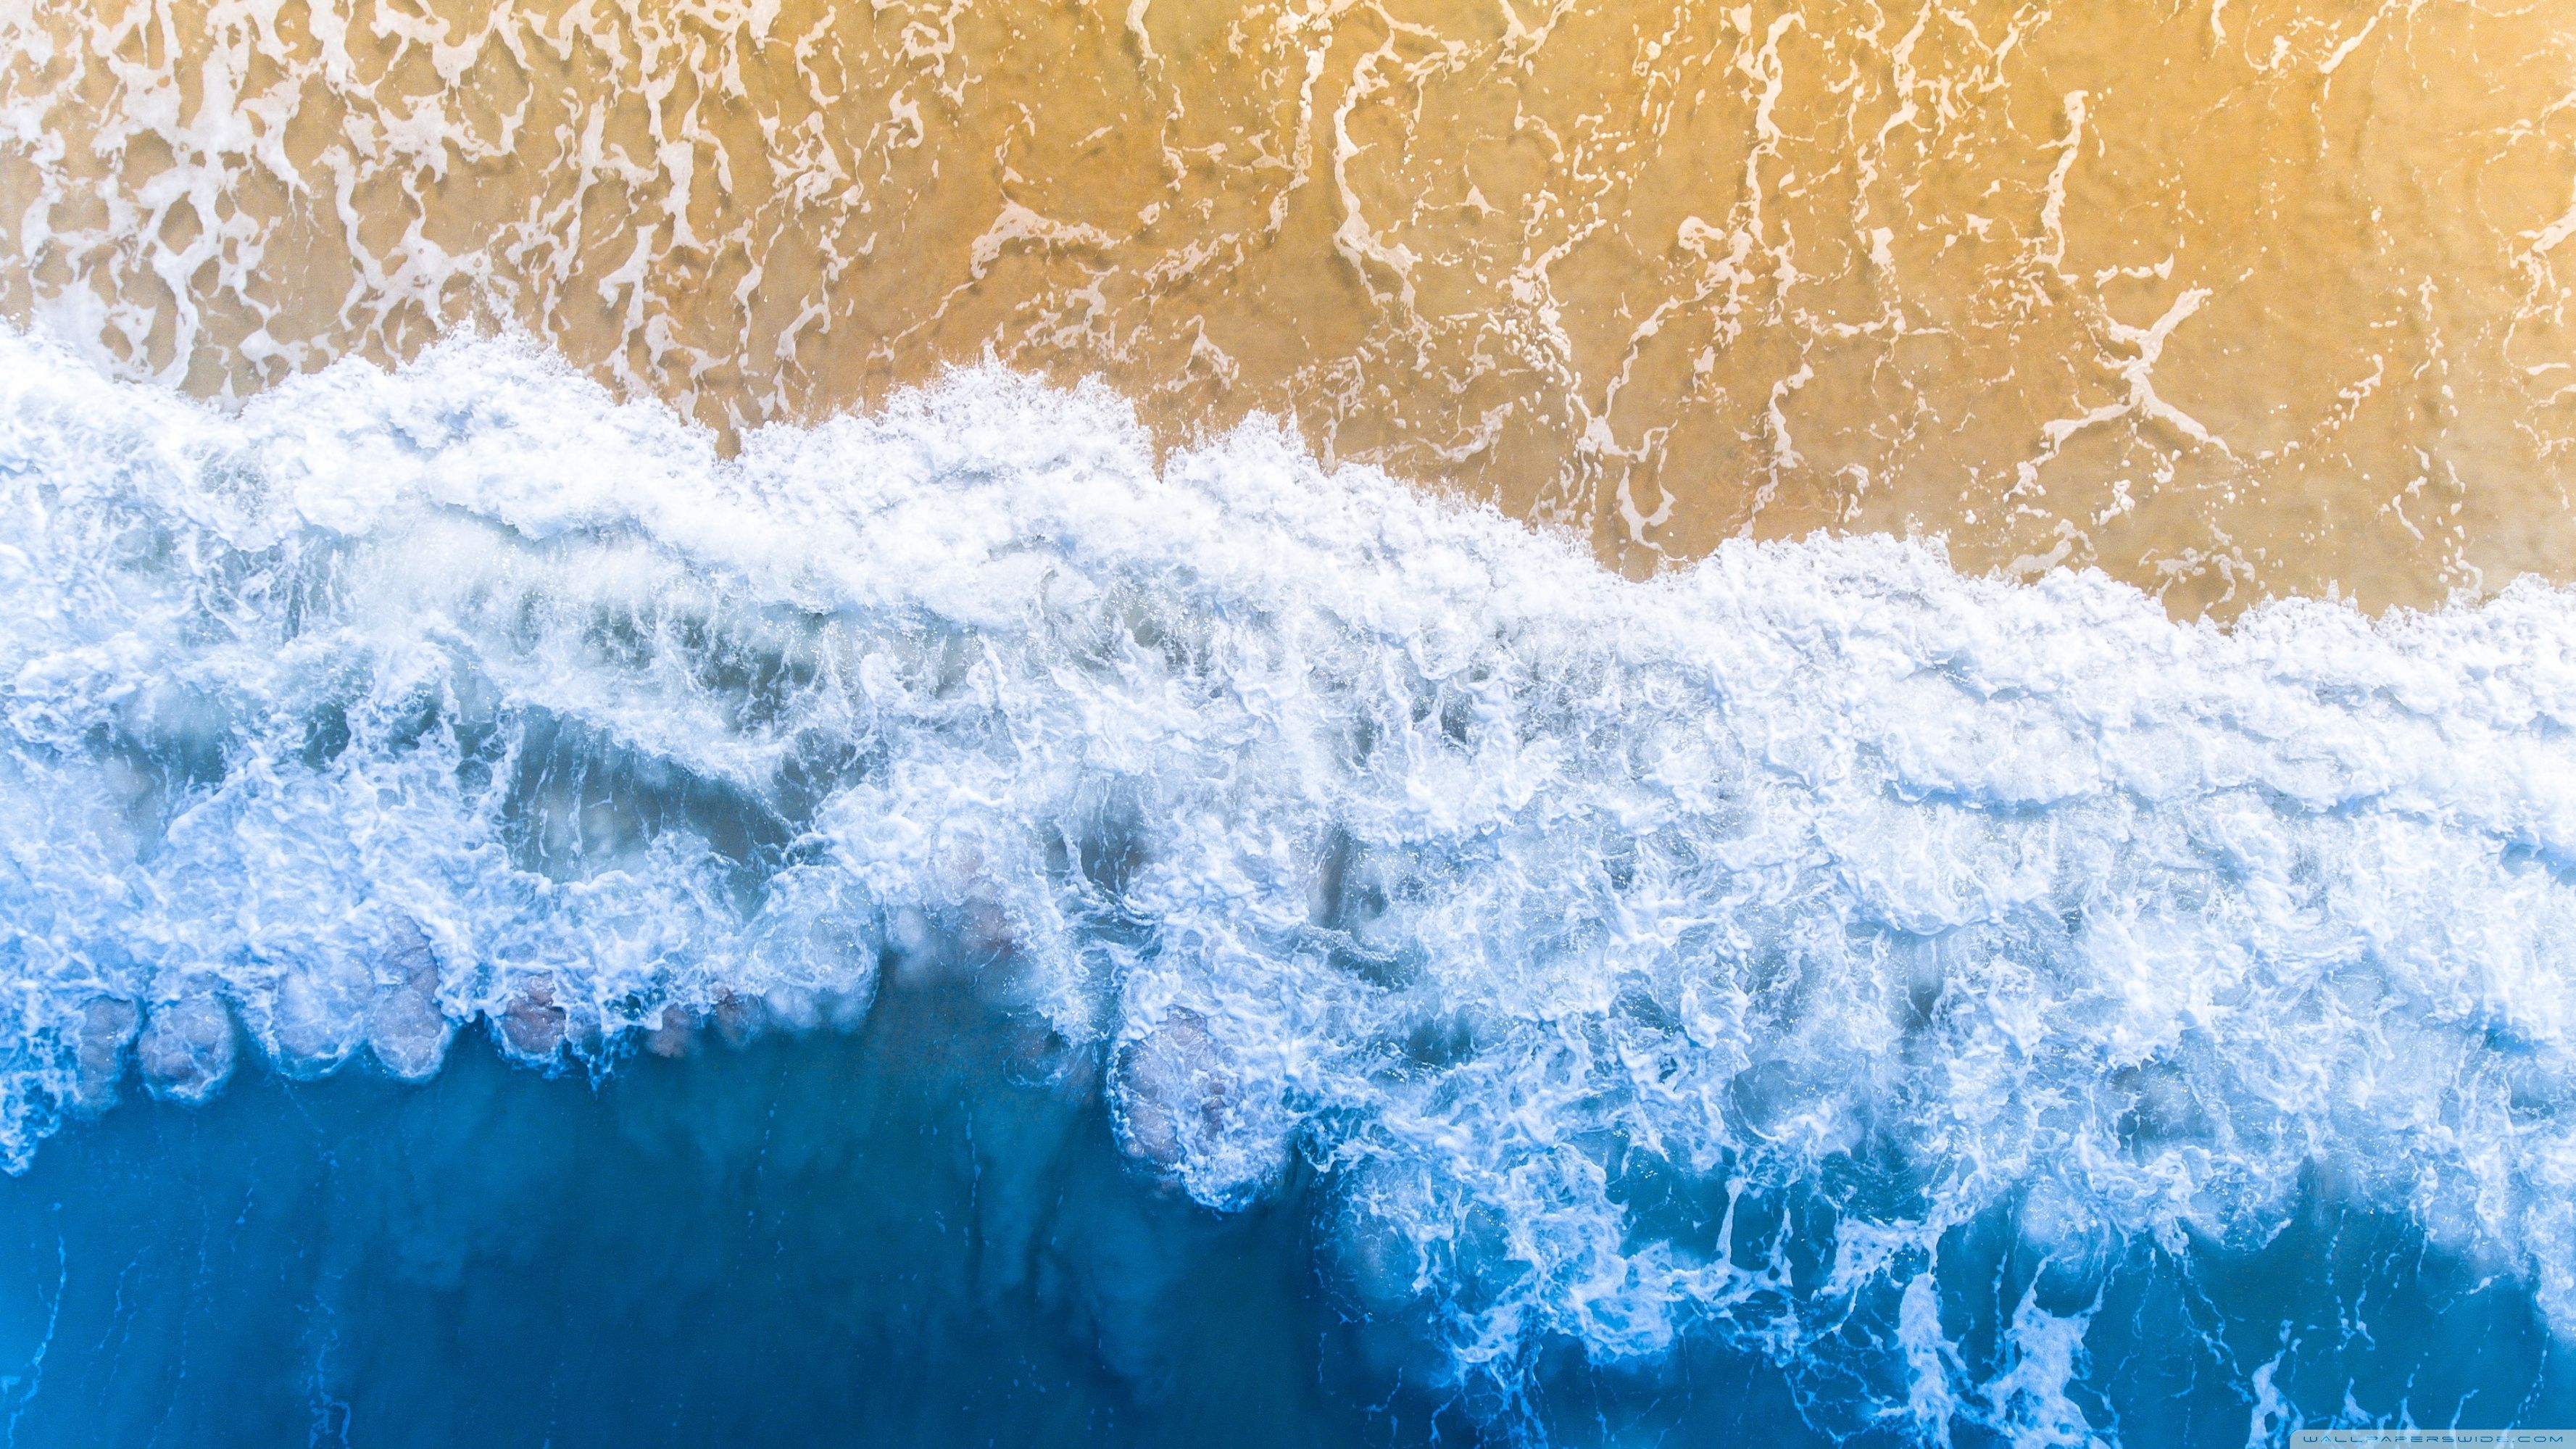 Aesthetic Wave Wallpapers Top Free Aesthetic Wave